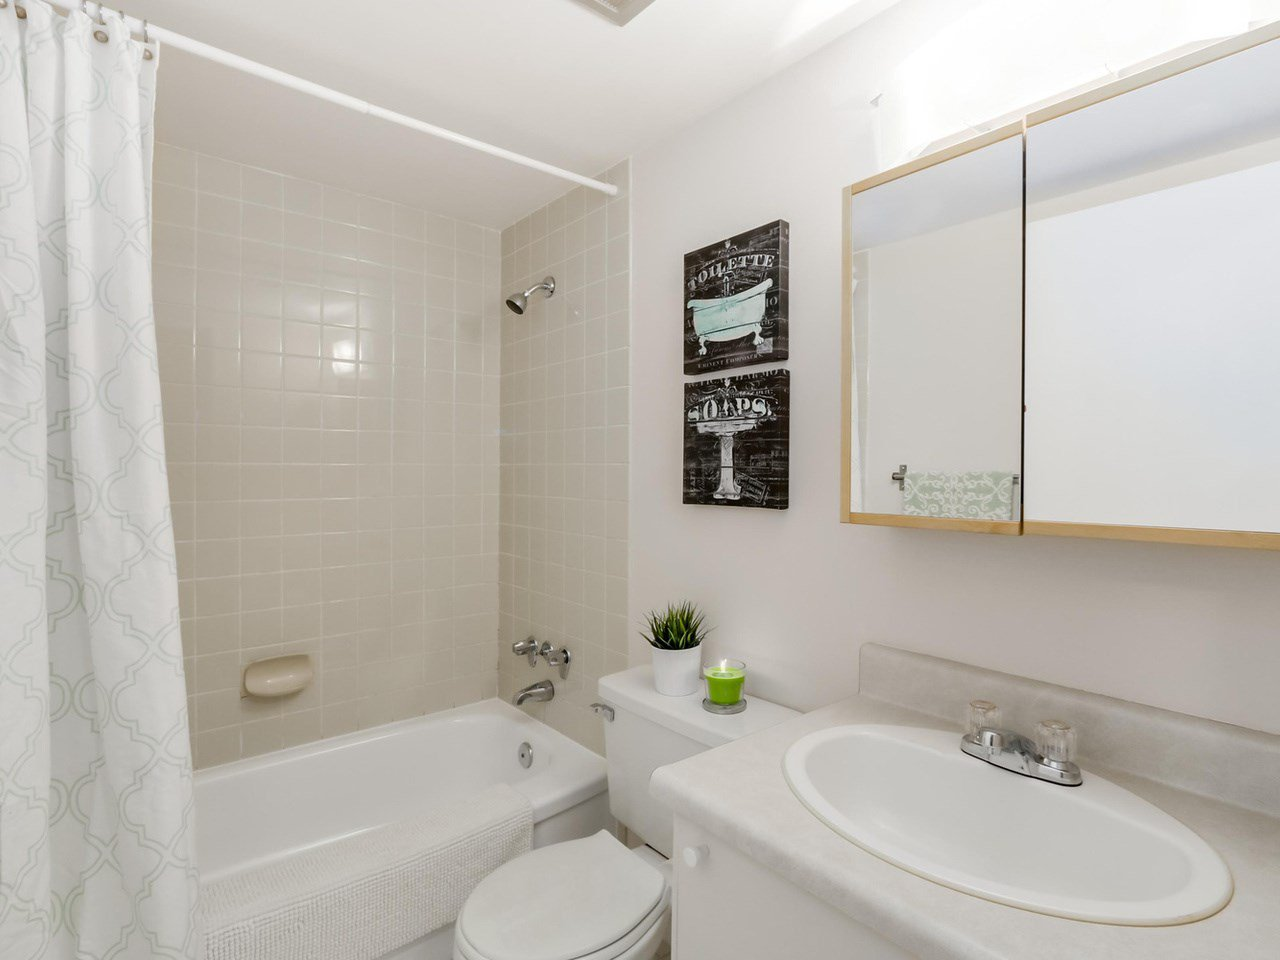 """Photo 17: Photos: 207 1545 E 2ND Avenue in Vancouver: Grandview VE Condo for sale in """"TALISHAN WOODS"""" (Vancouver East)  : MLS®# R2086466"""